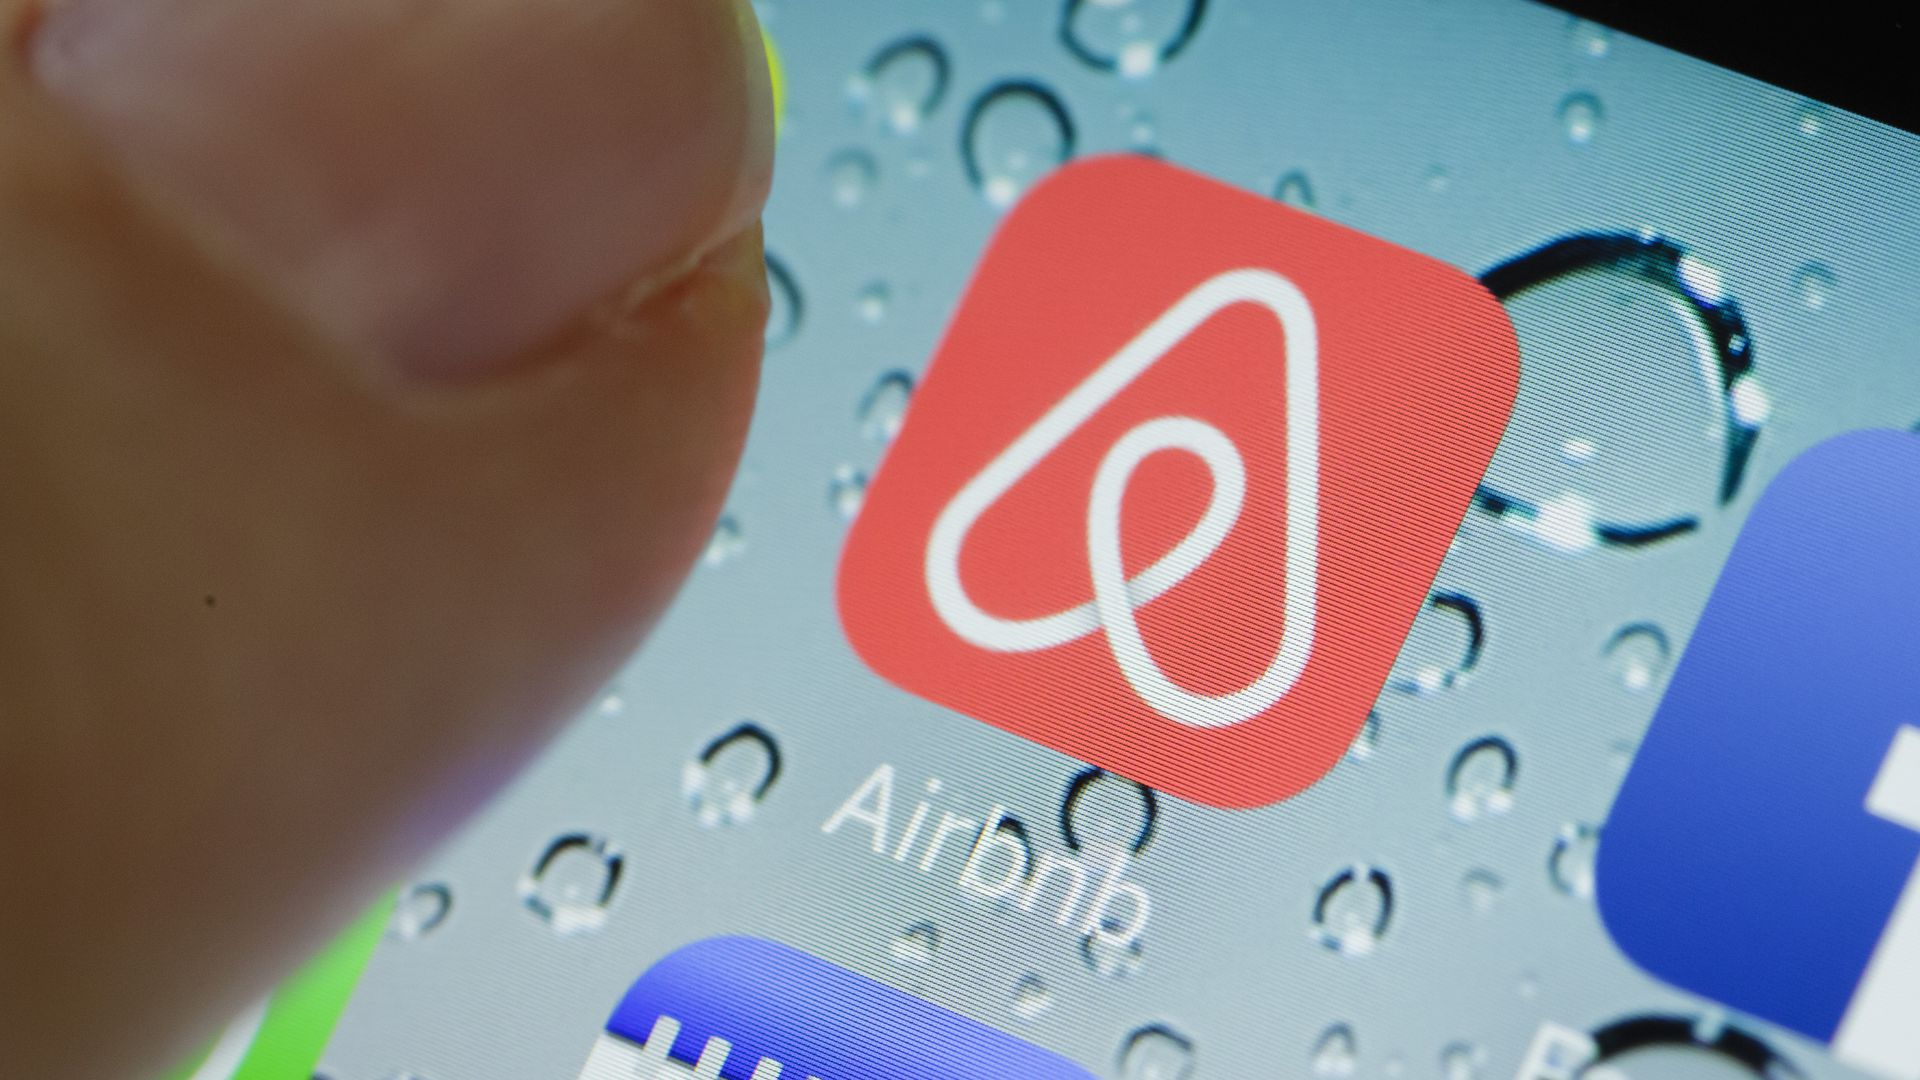 Photo of Airbnb mobile app icon.